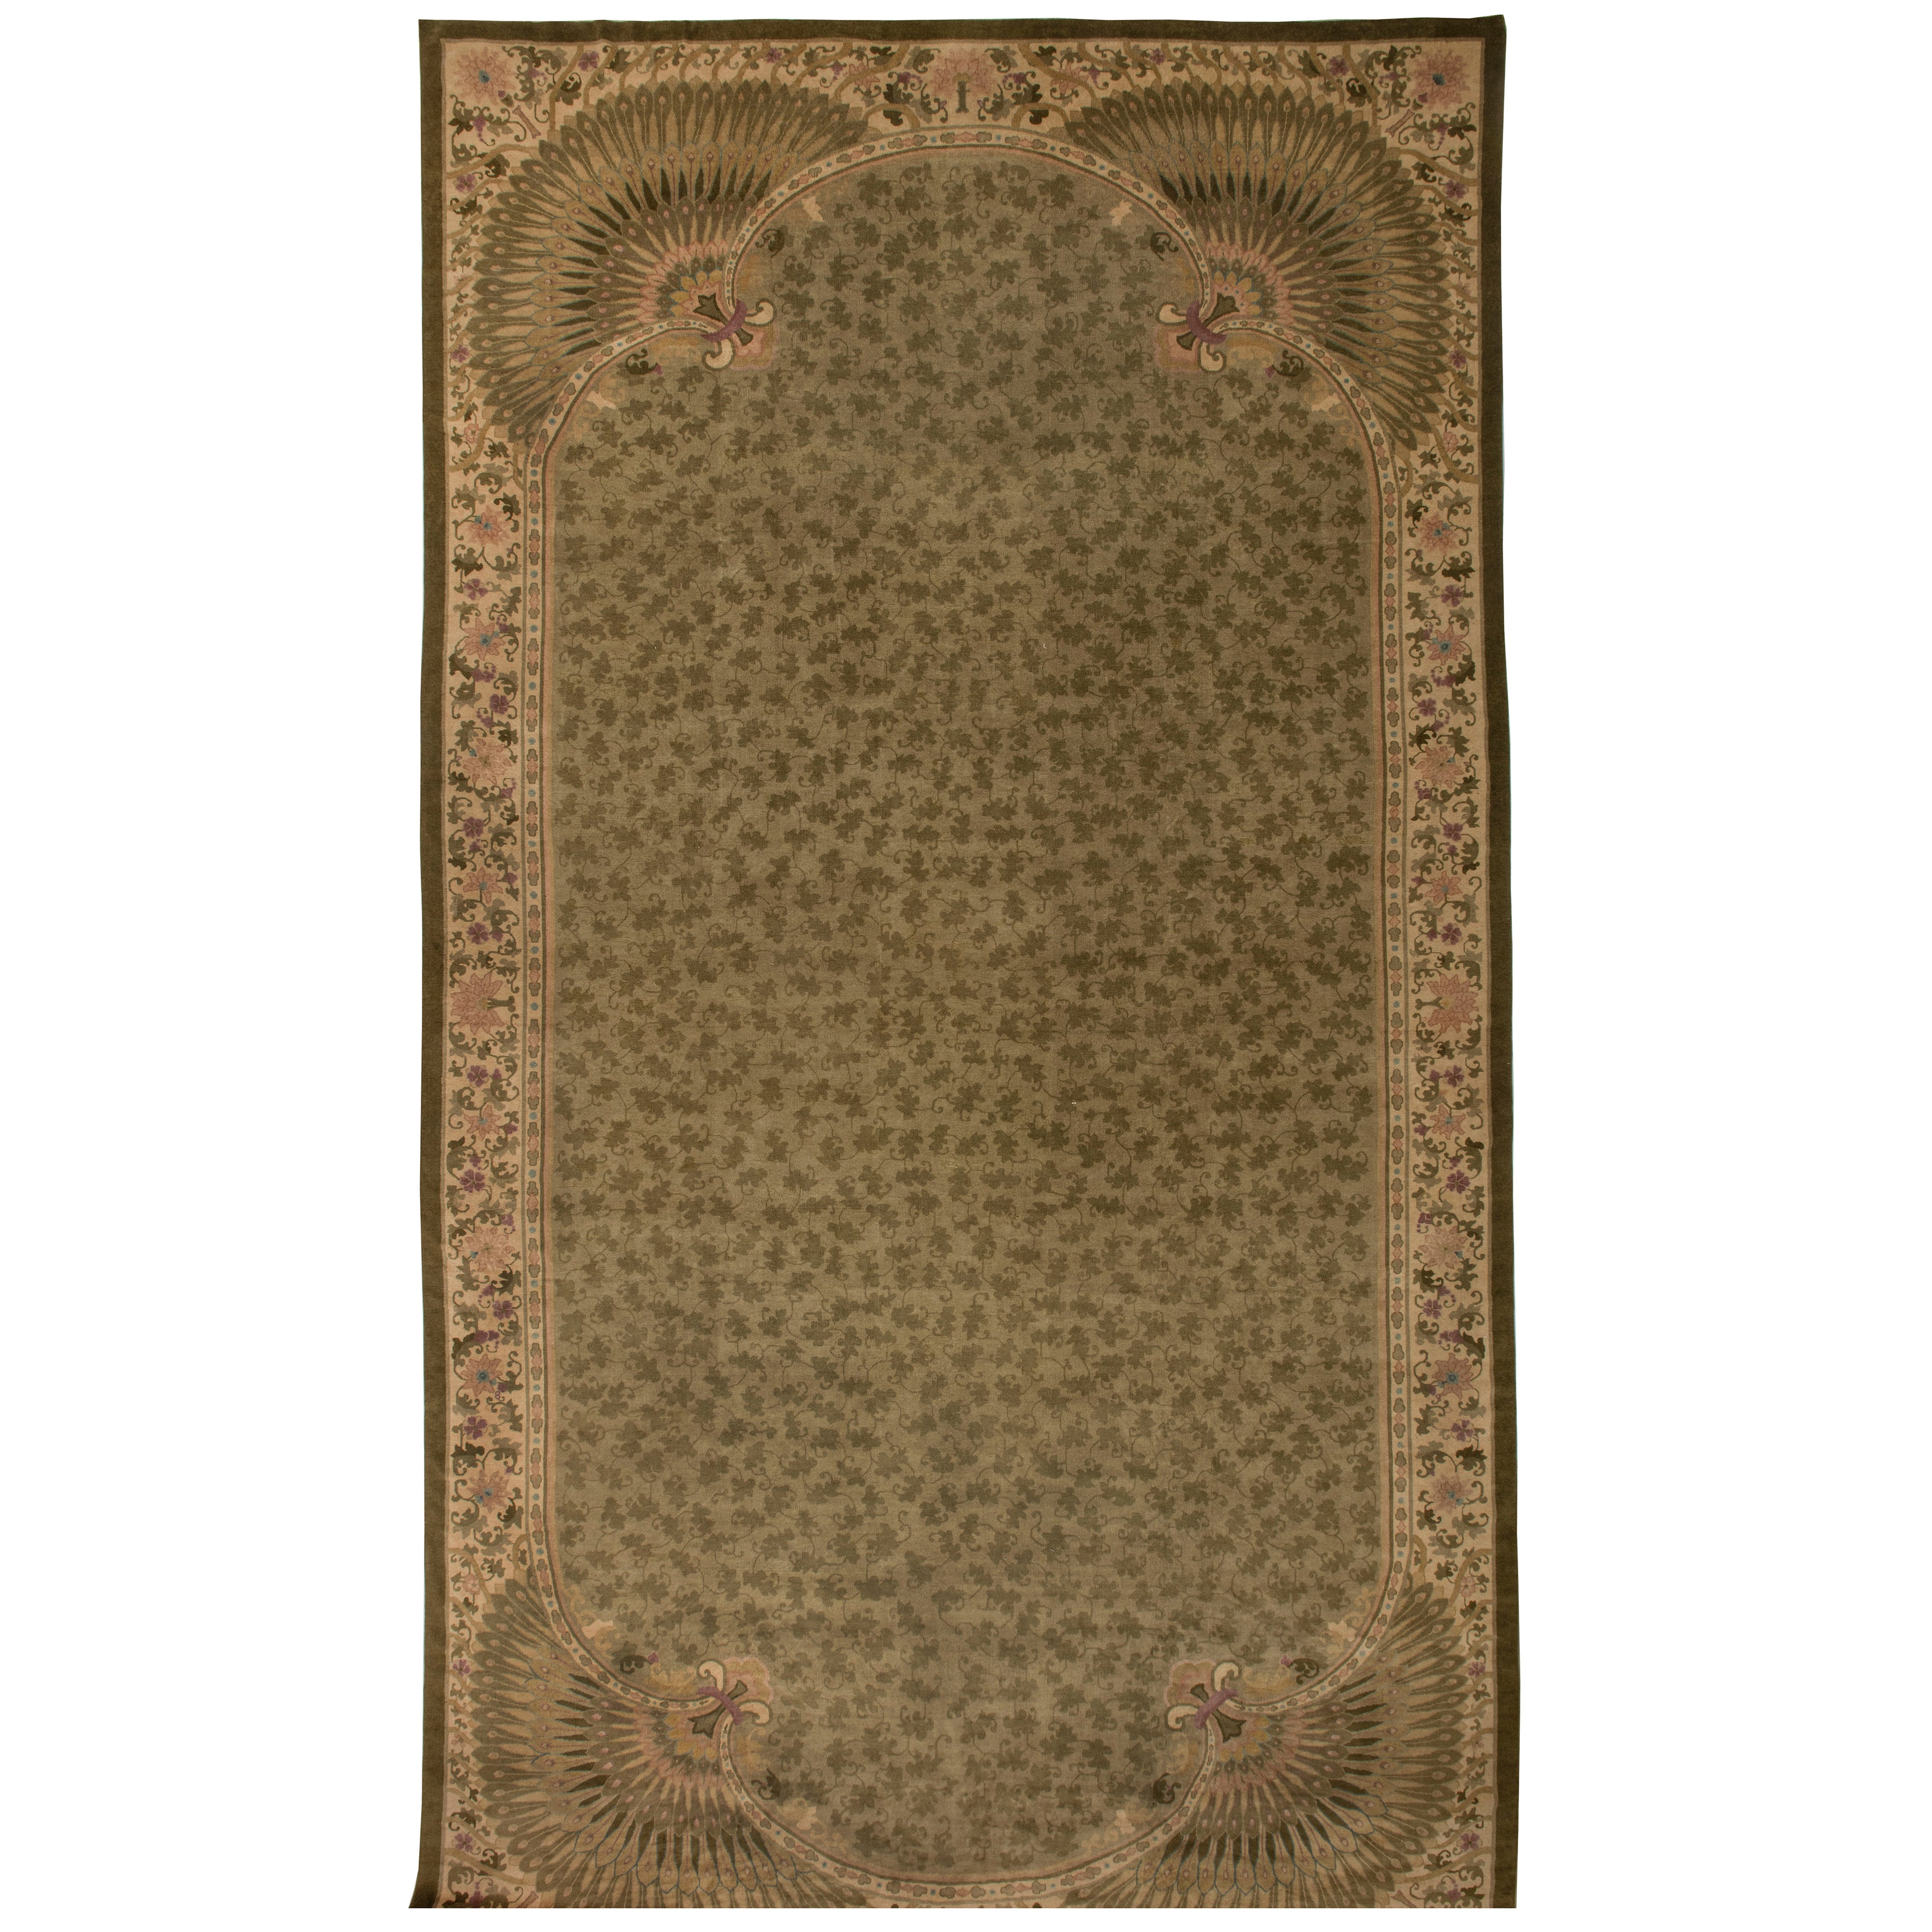 Vintage Aubusson Garden Trellis Chinese Rug For Sale at 1stdibs